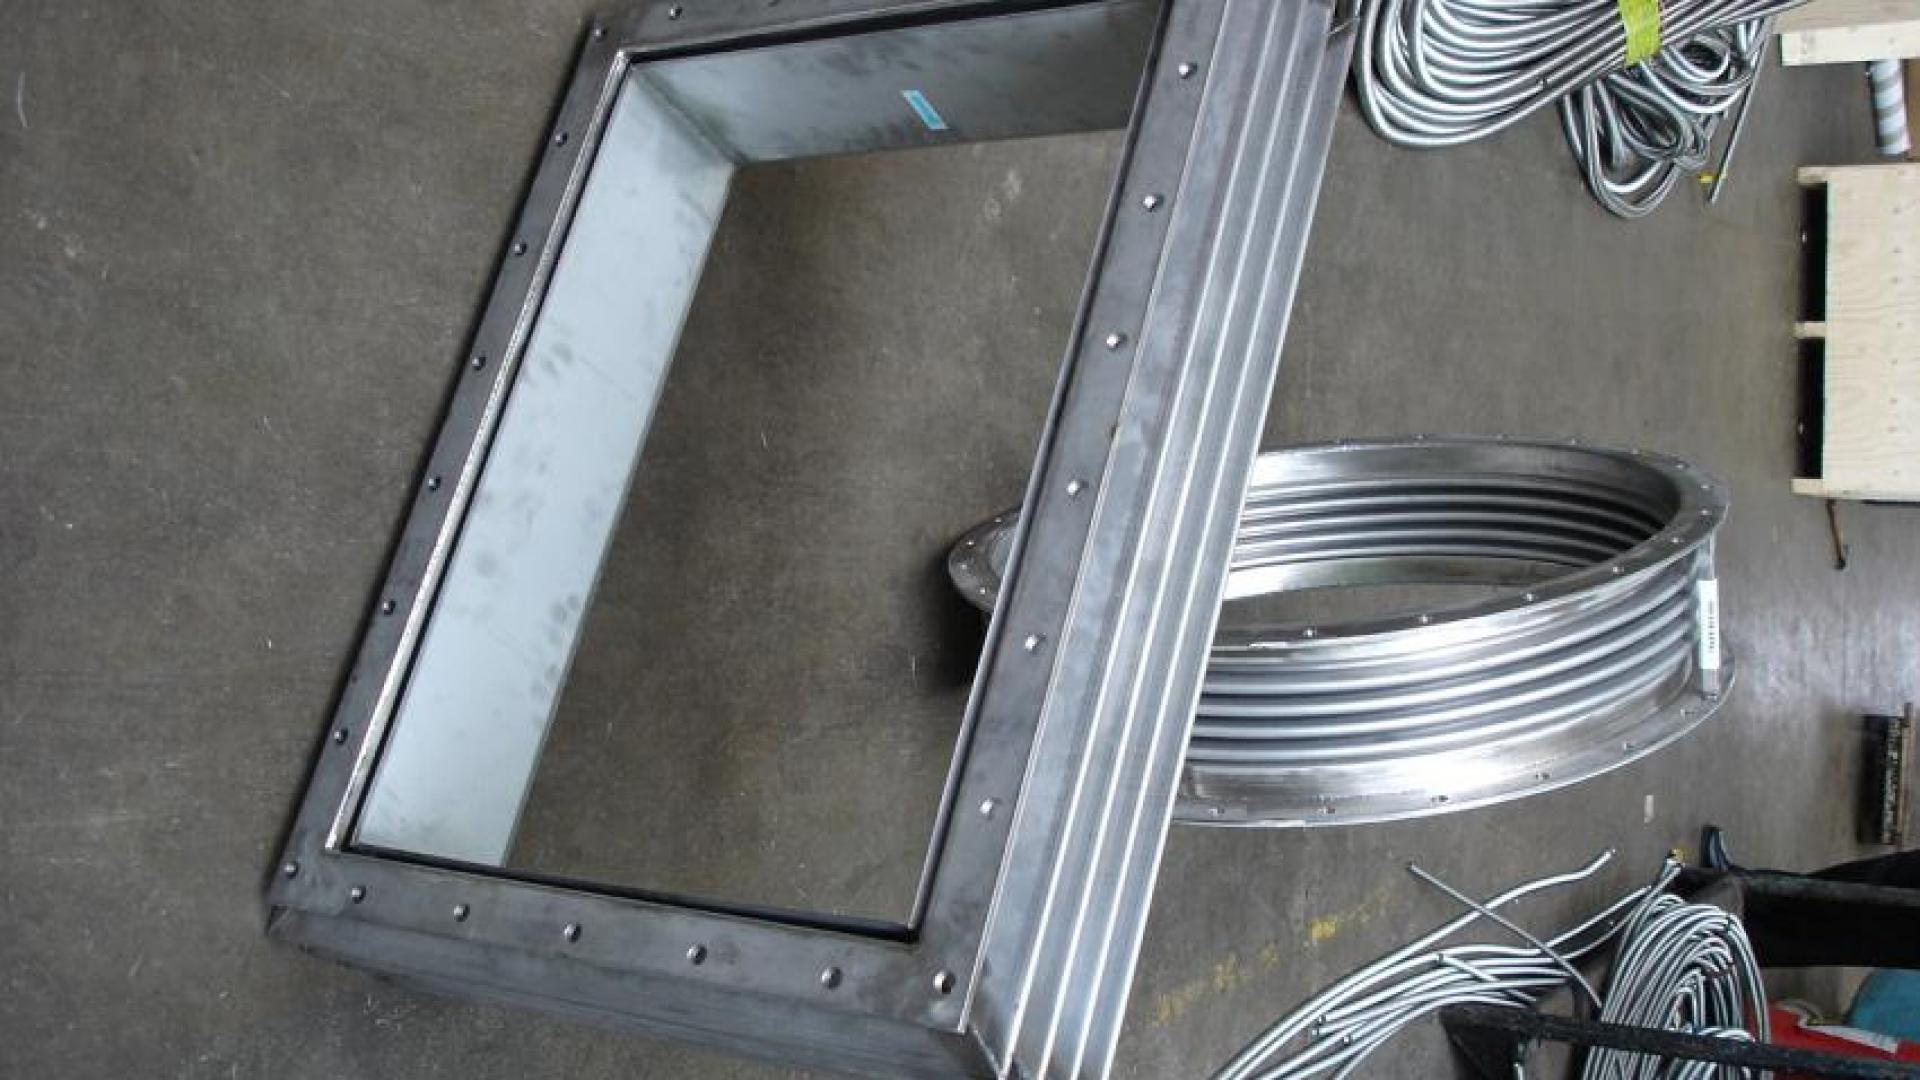 Rectangular metal expansion joints